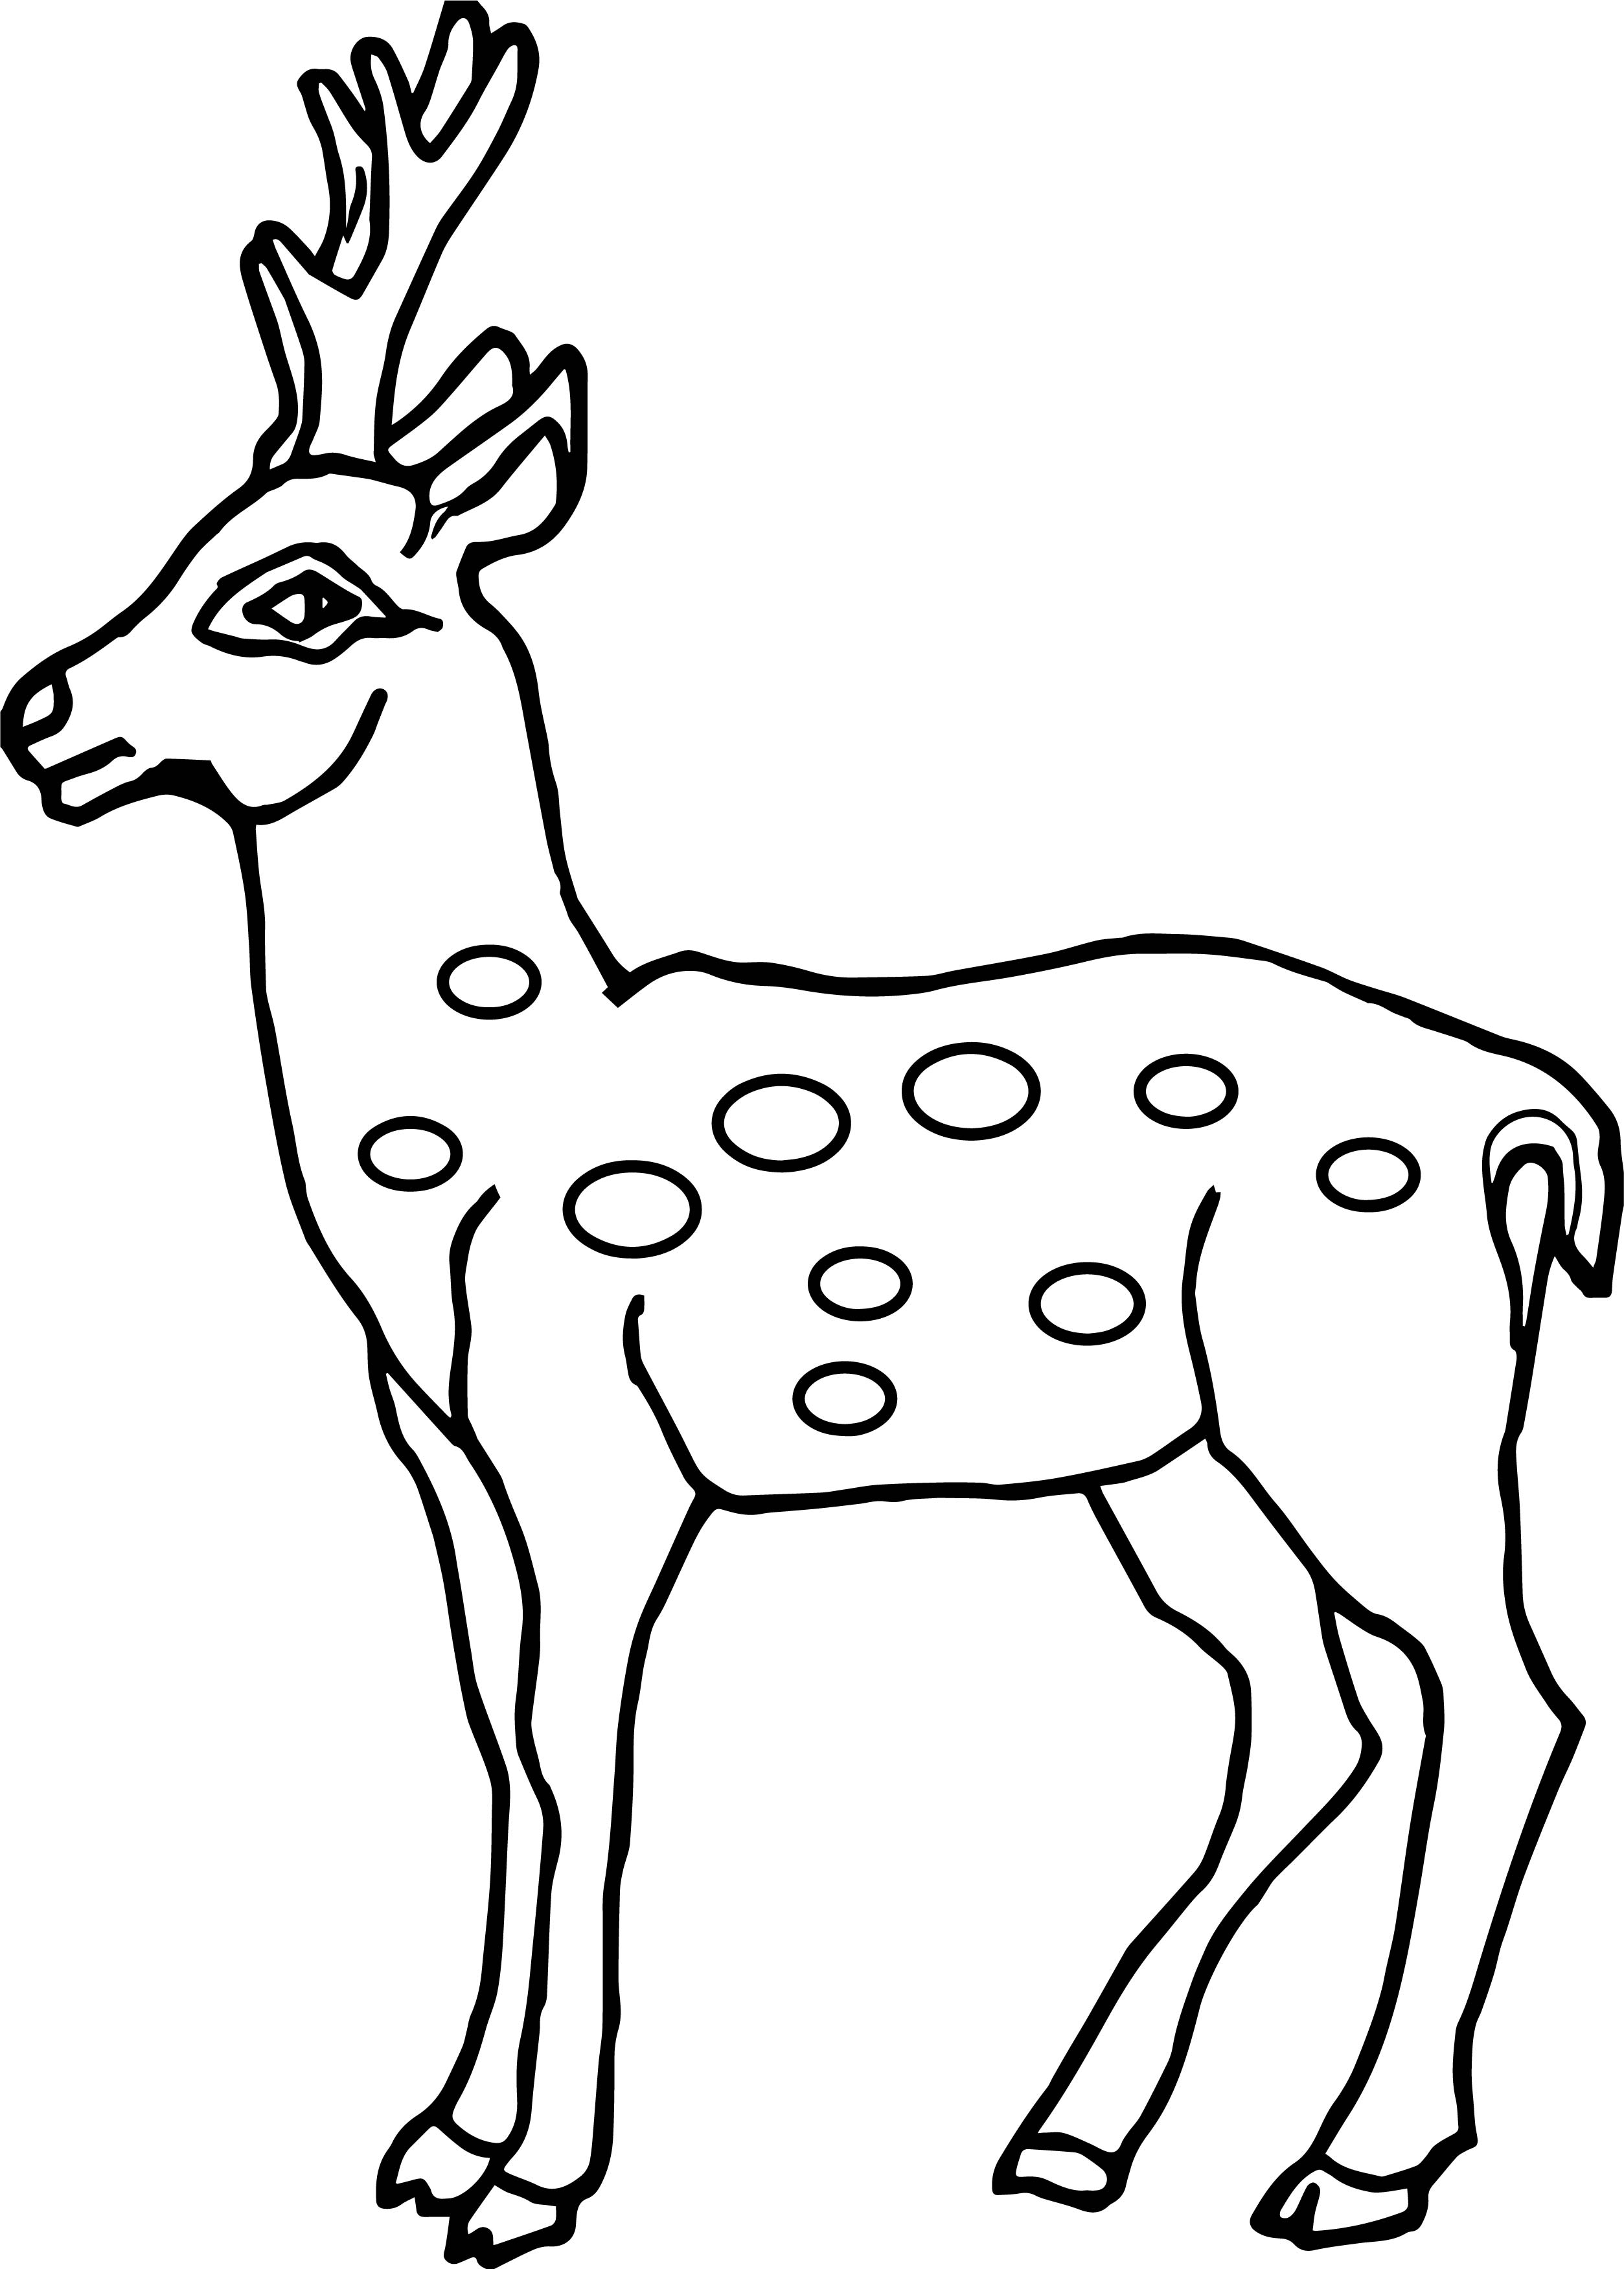 baby spotted deer coloring page wecoloringpage